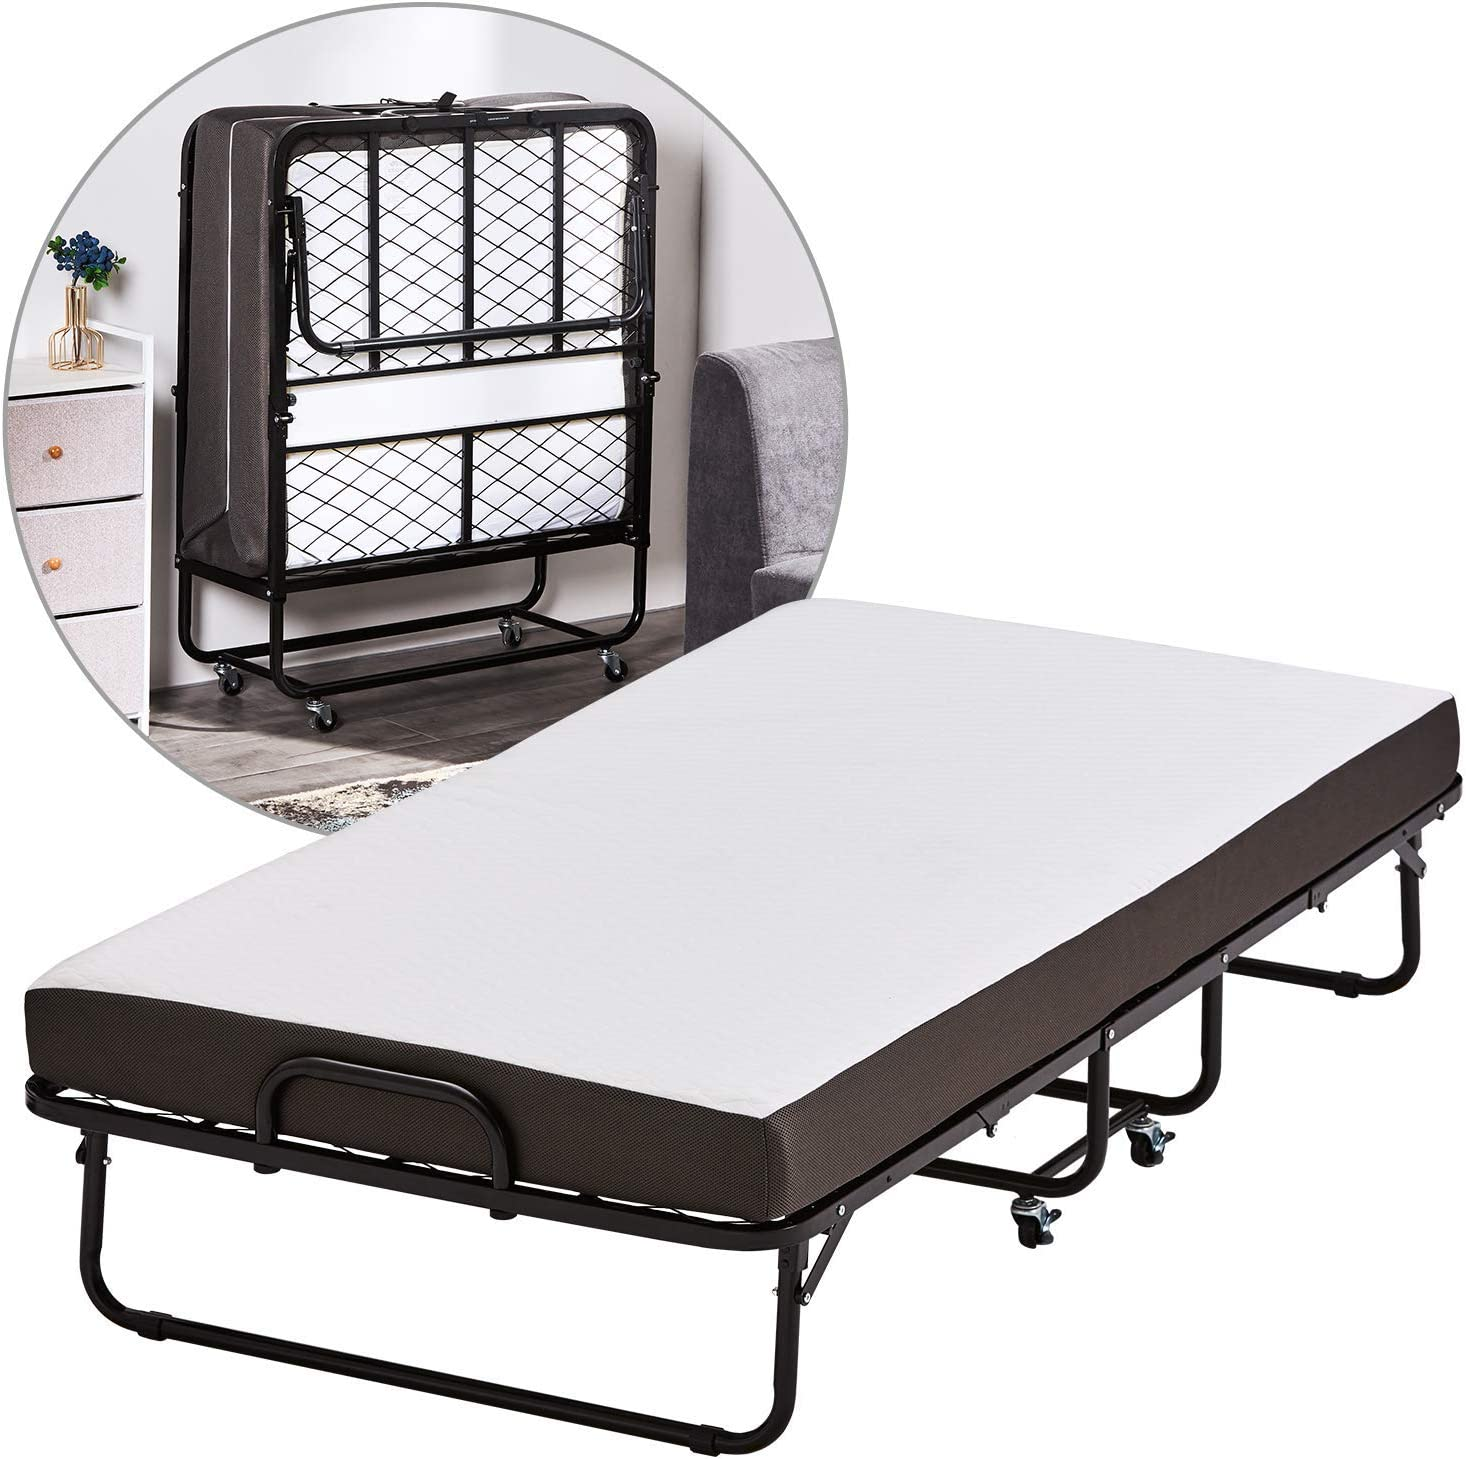 - DICTAC Folding Bed/Guest Bed, Extra Guest Bed With 5 Inch Mattress,  Portable Bed Frame On Wheels - Easy Storage - Space Saving -No Tools  Required: Amazon.co.uk: Kitchen & Home